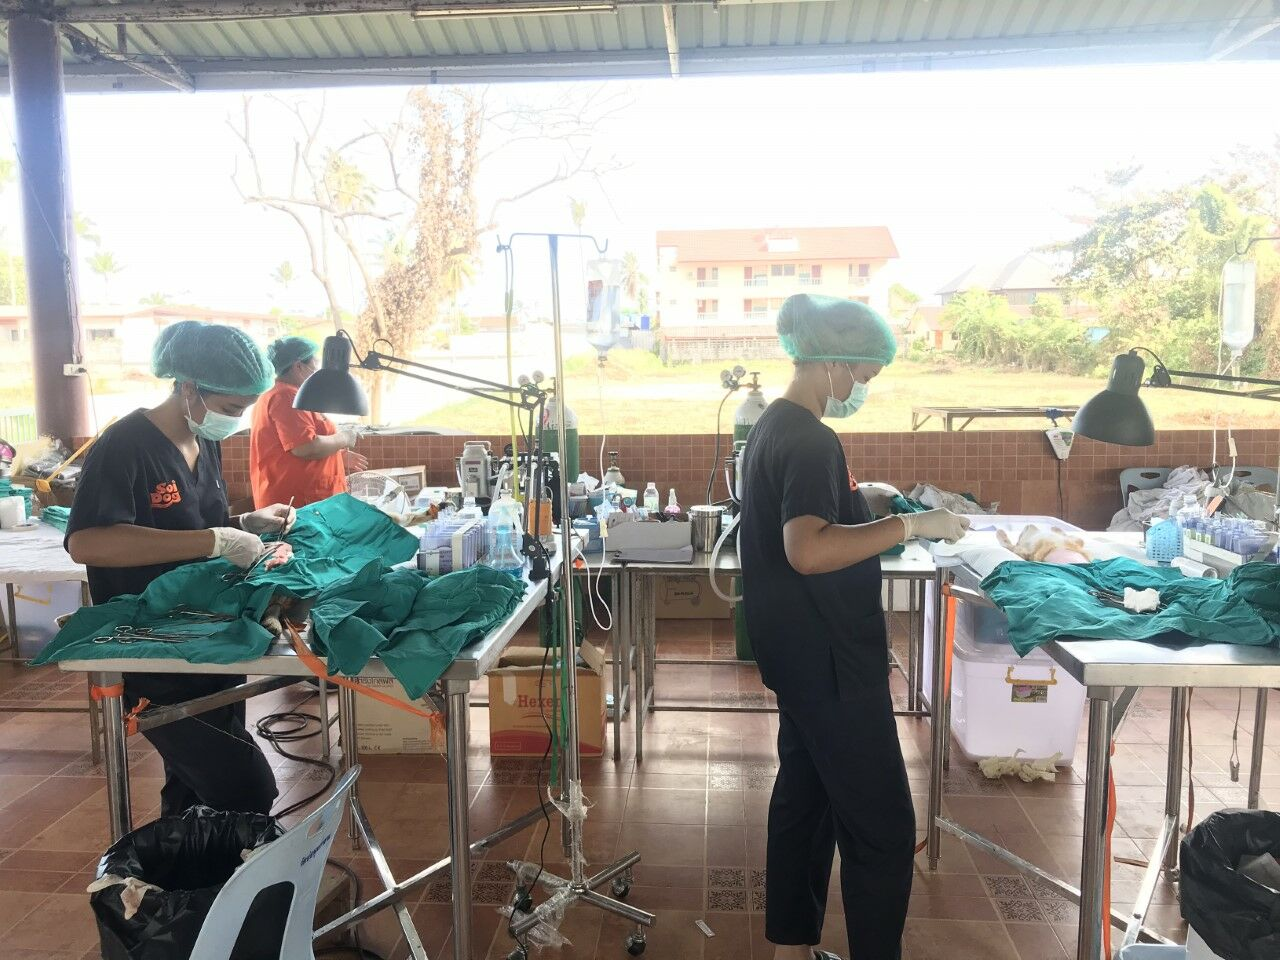 Soi Dog sets up mobile clinic on Koh Samui to neuter and vaccinate stray animals | The Thaiger